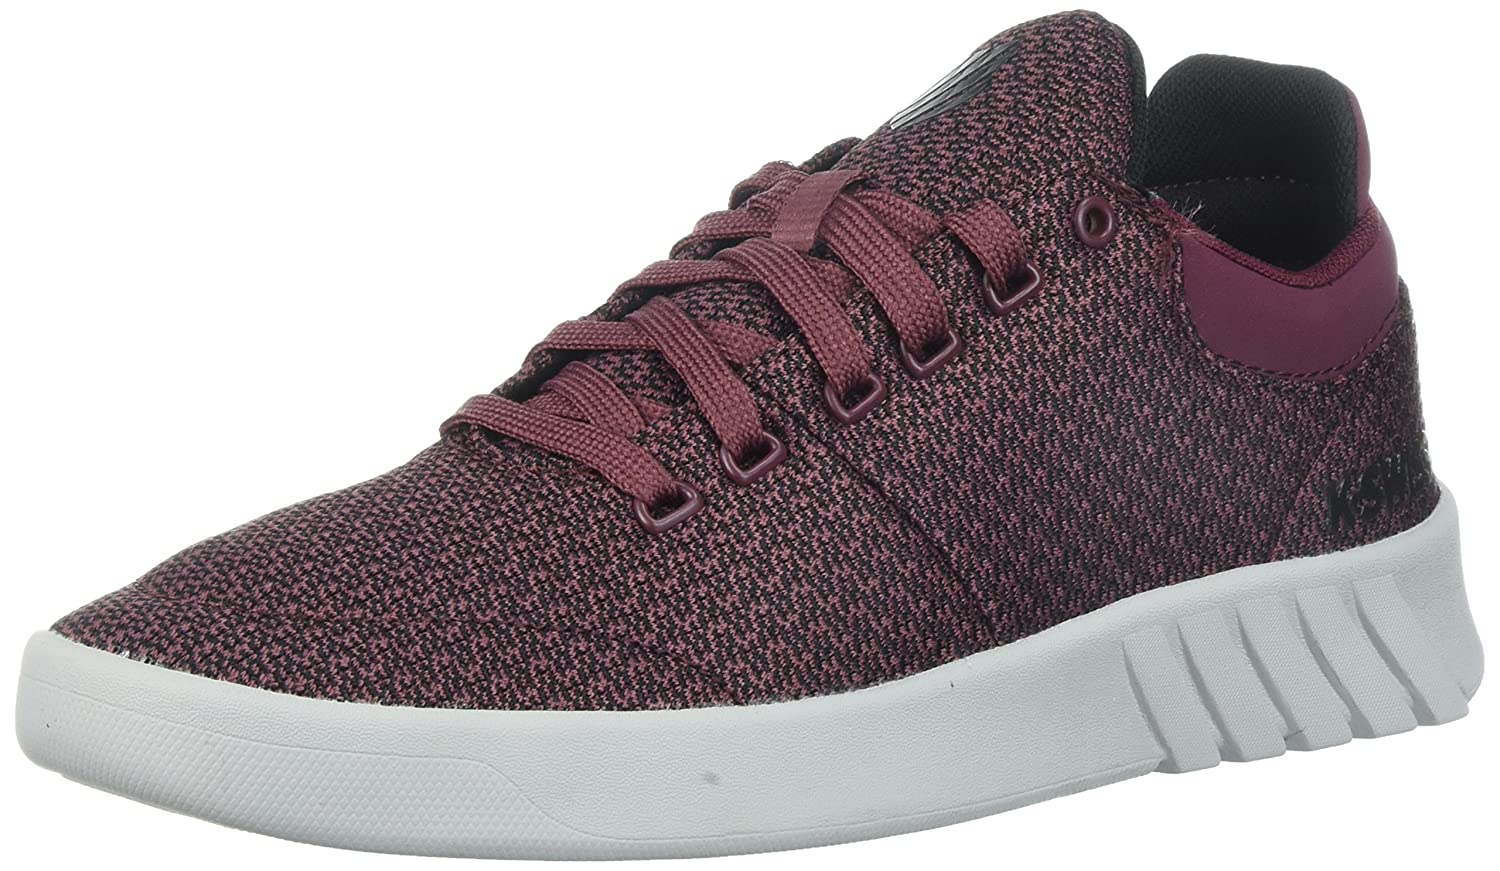 K-Swiss Women's Aero Trainer T Sneaker B071P3PR1D 6 B(M) US|Burgundy/Black